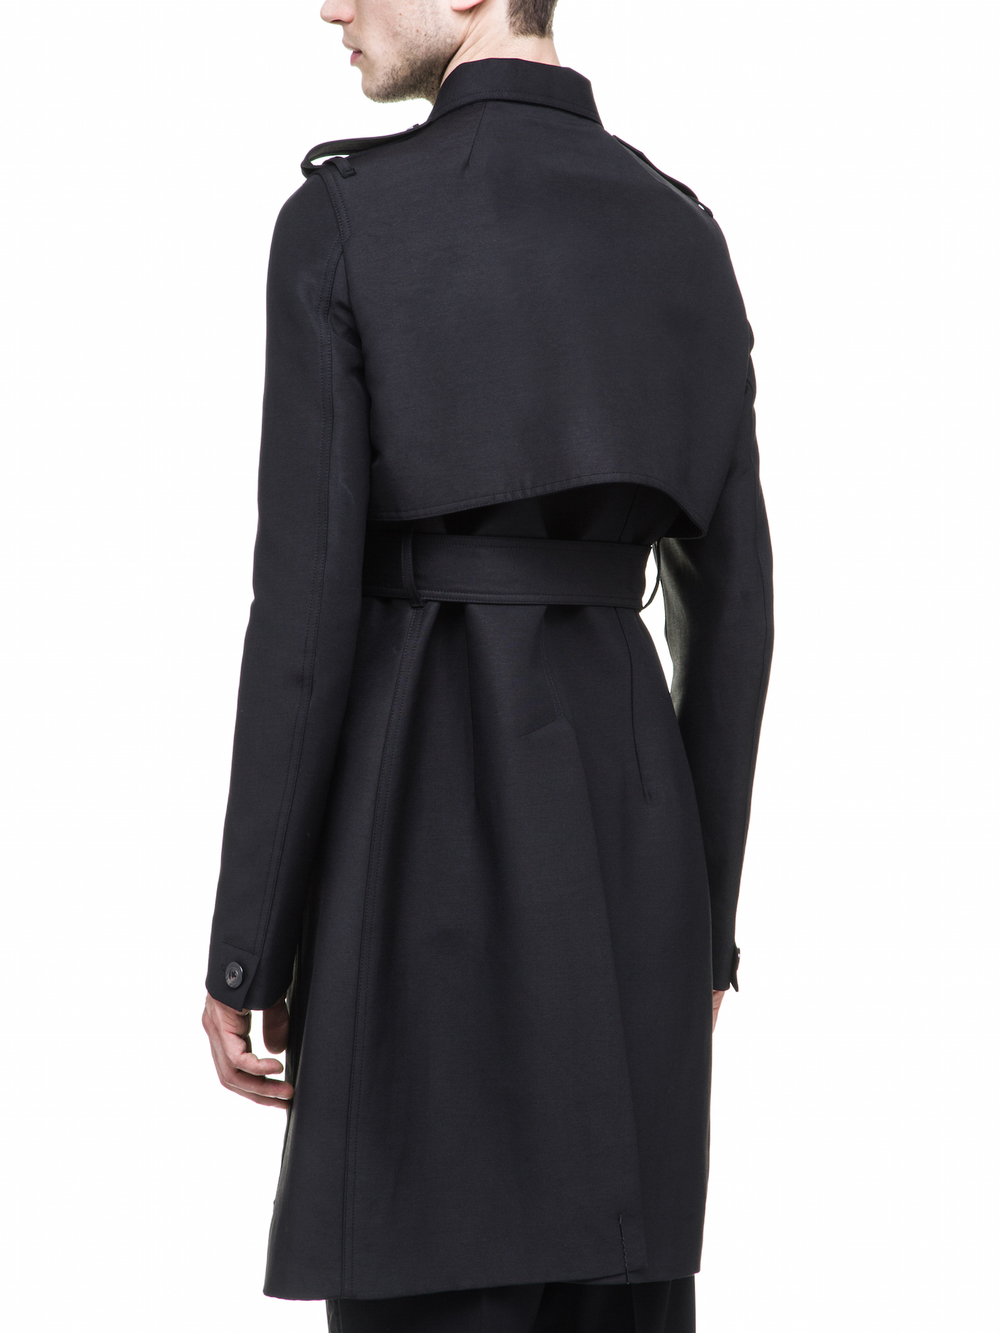 RICK OWENS TRENCH IN BLACK FOR MENS